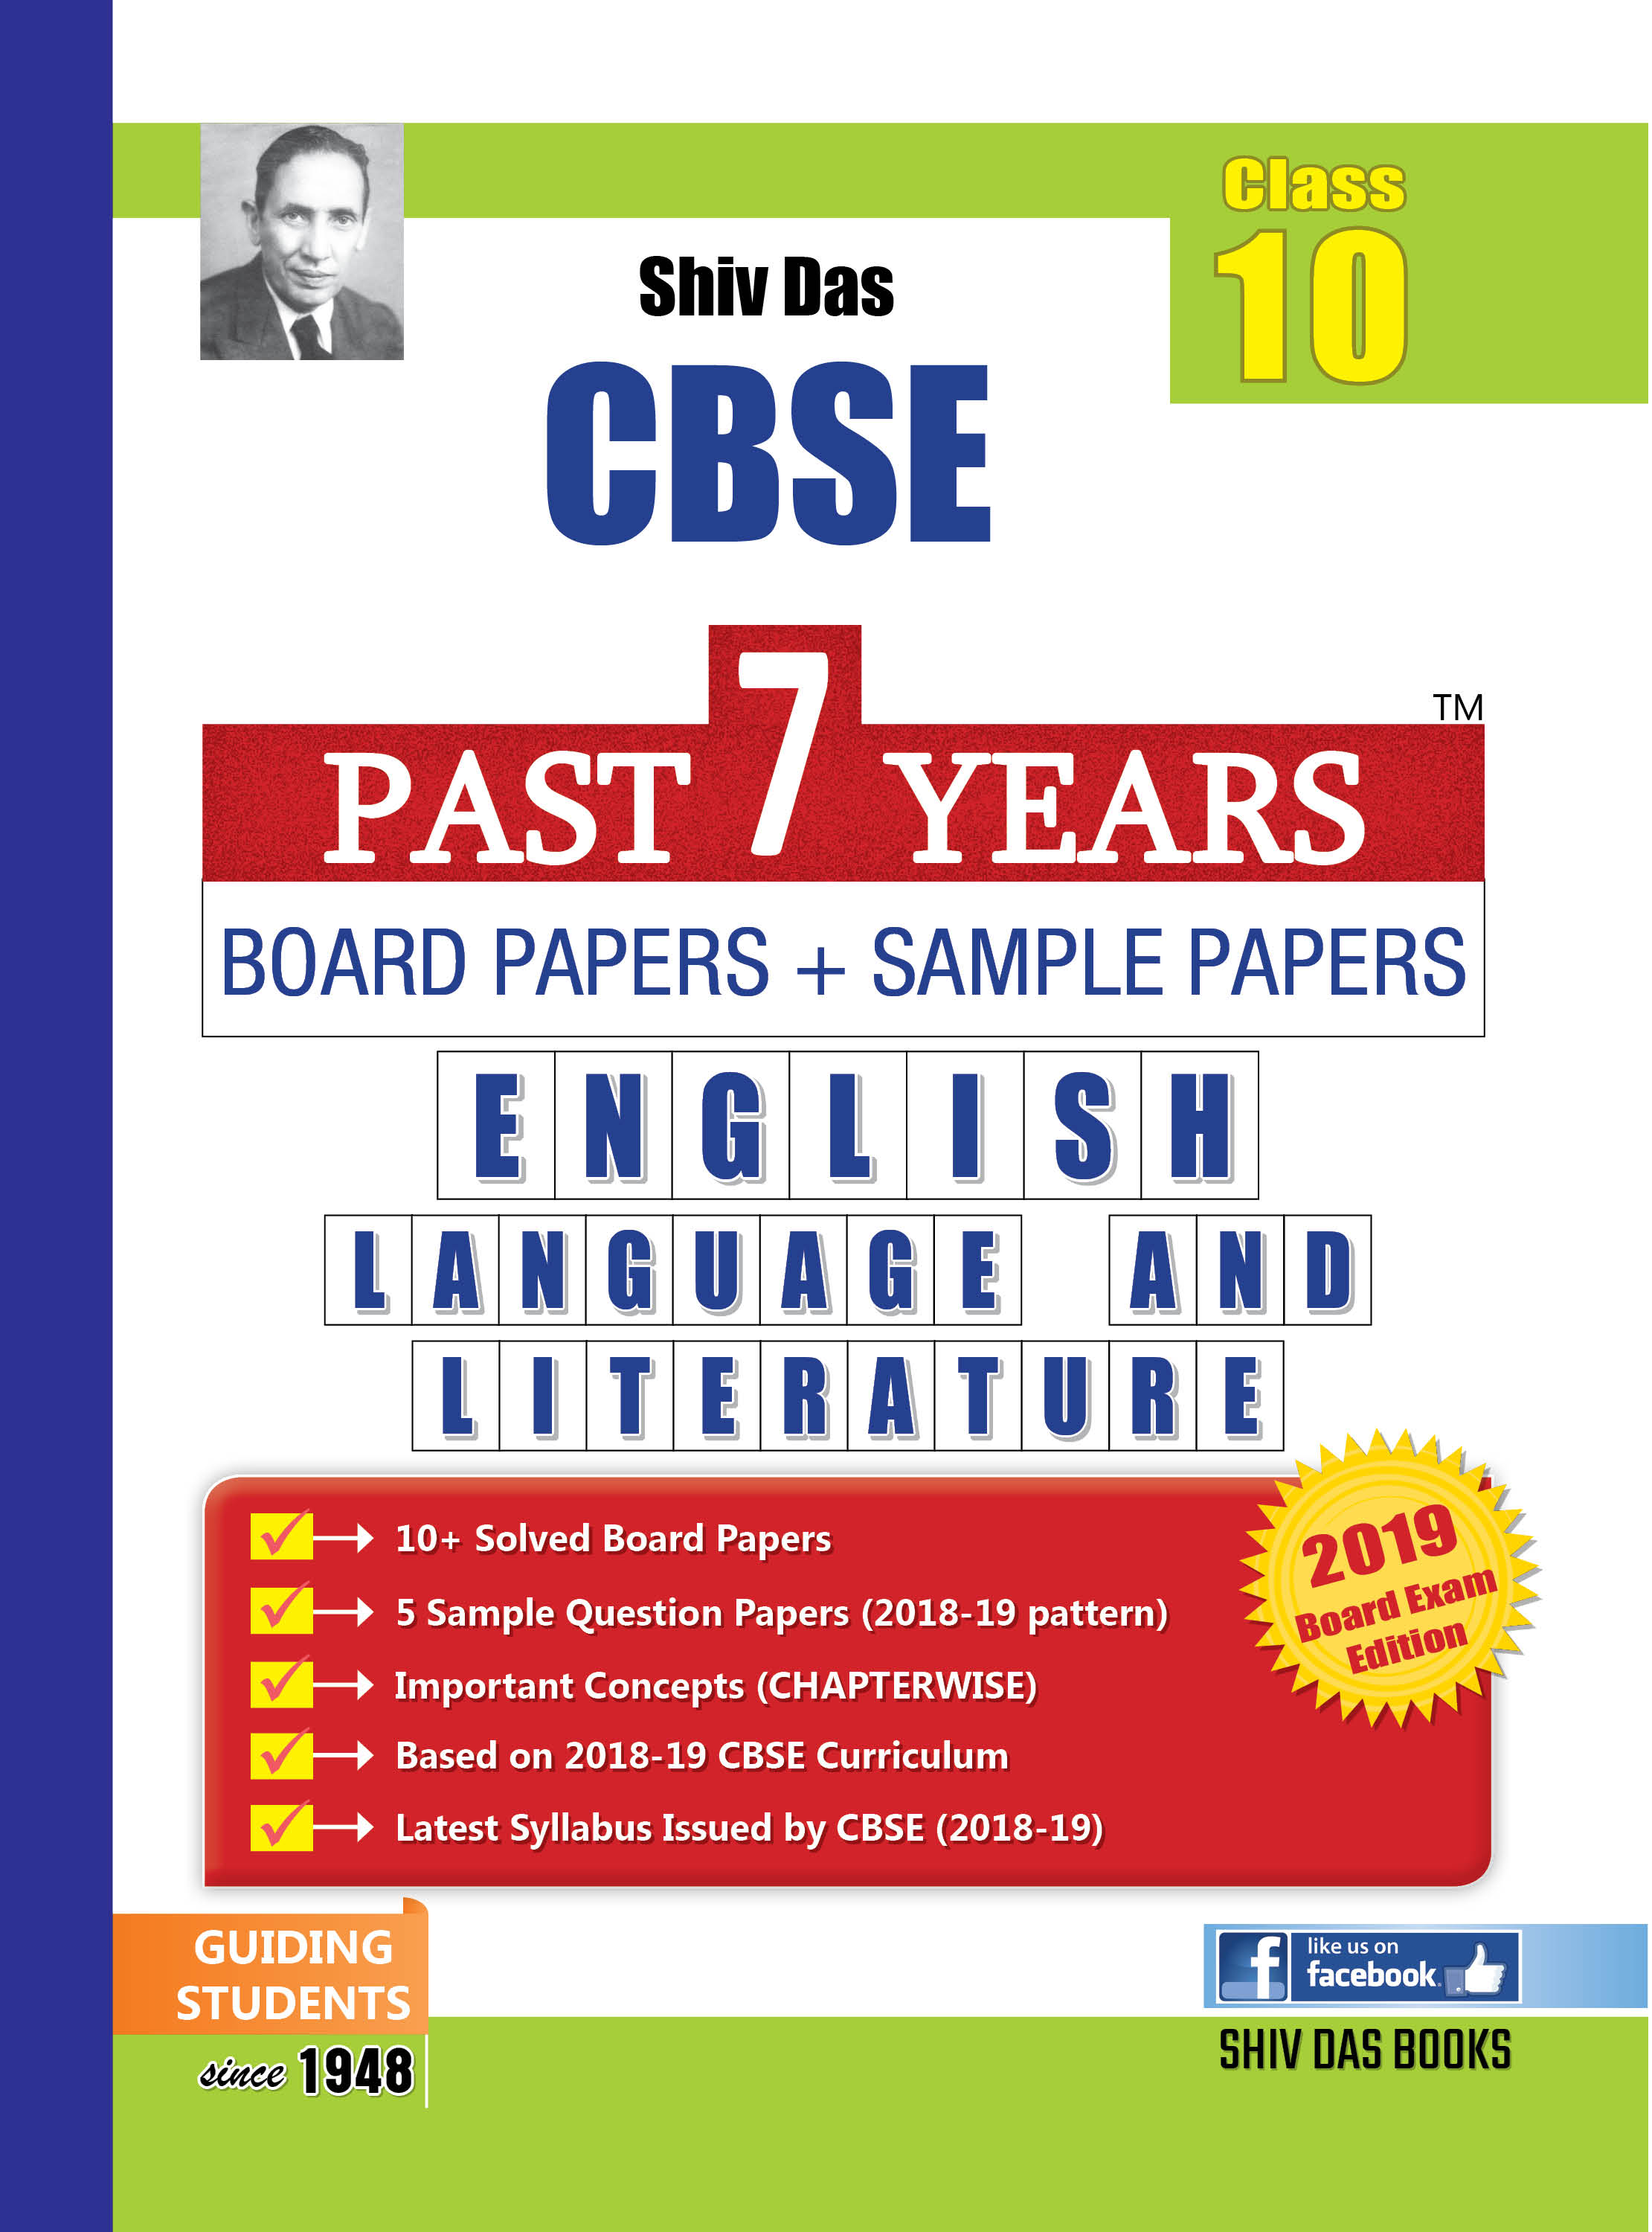 CBSE Past 7 Years Solved Board Papers+Sample Papers for Class 10 English  Language & Literature (2019 Board Exam Edition)